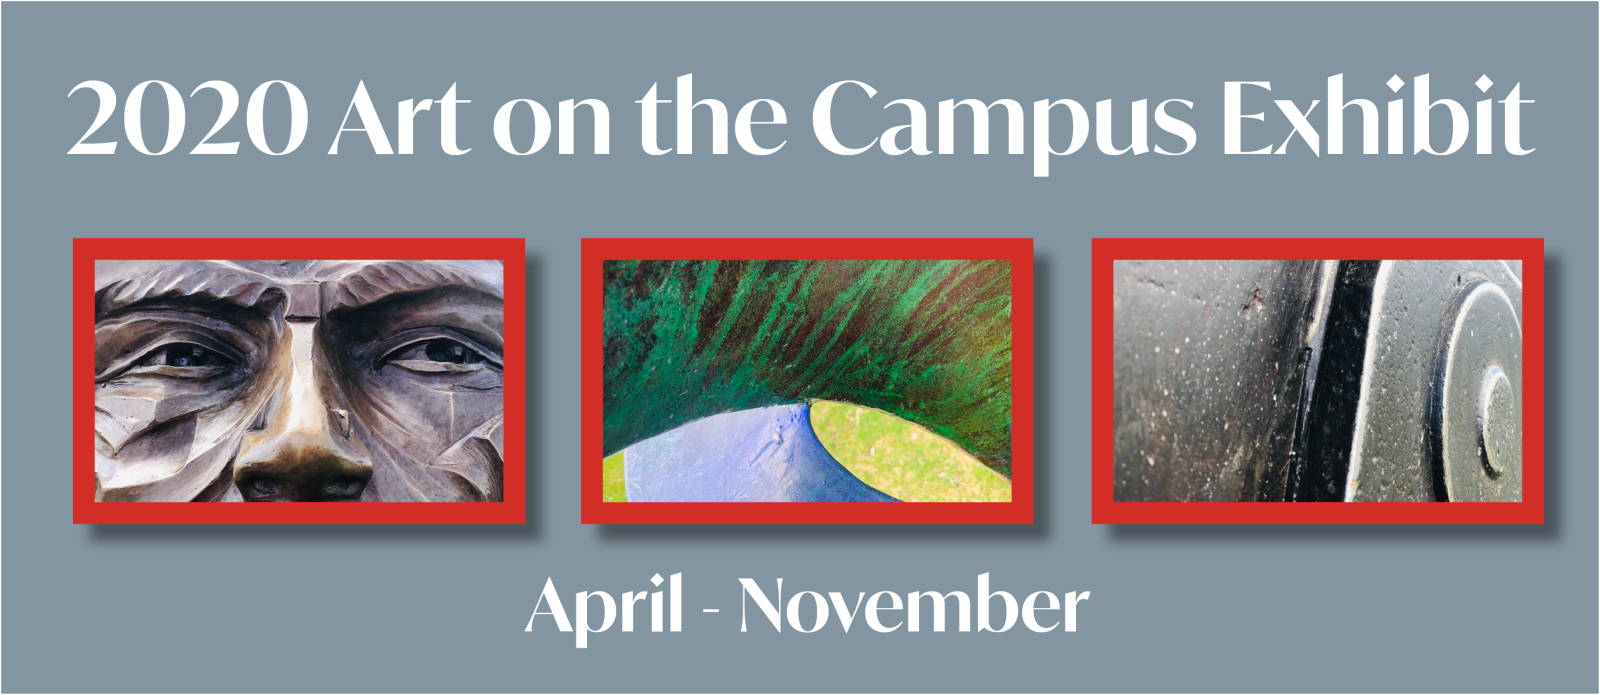 View the 2020 exhibit at WDM City Campus